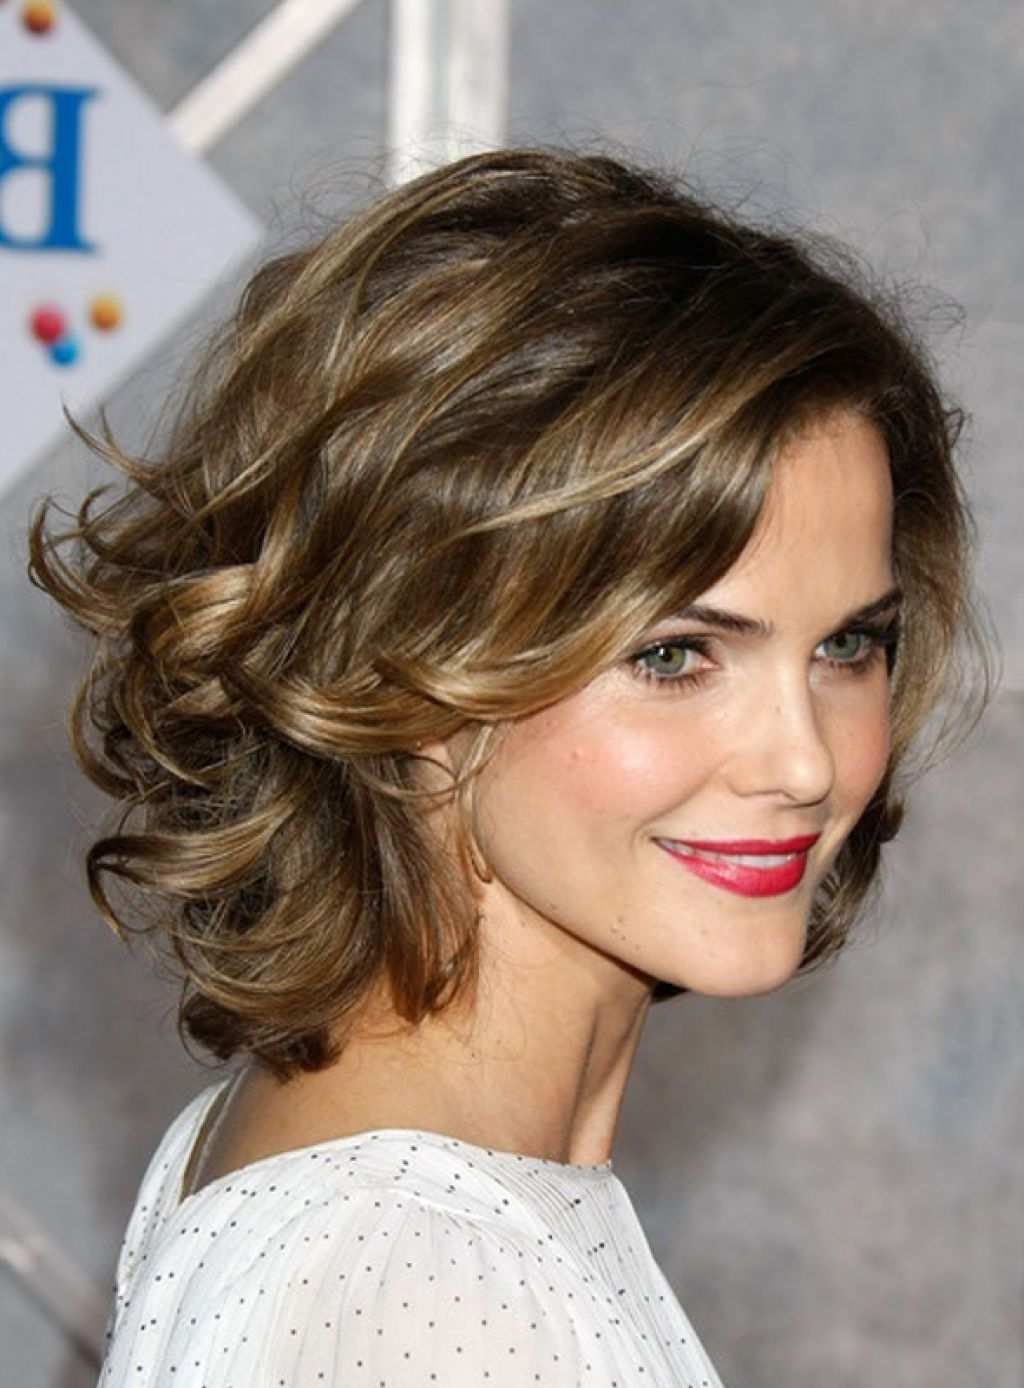 Medium hairstyles to make you look younger pinterest cabello